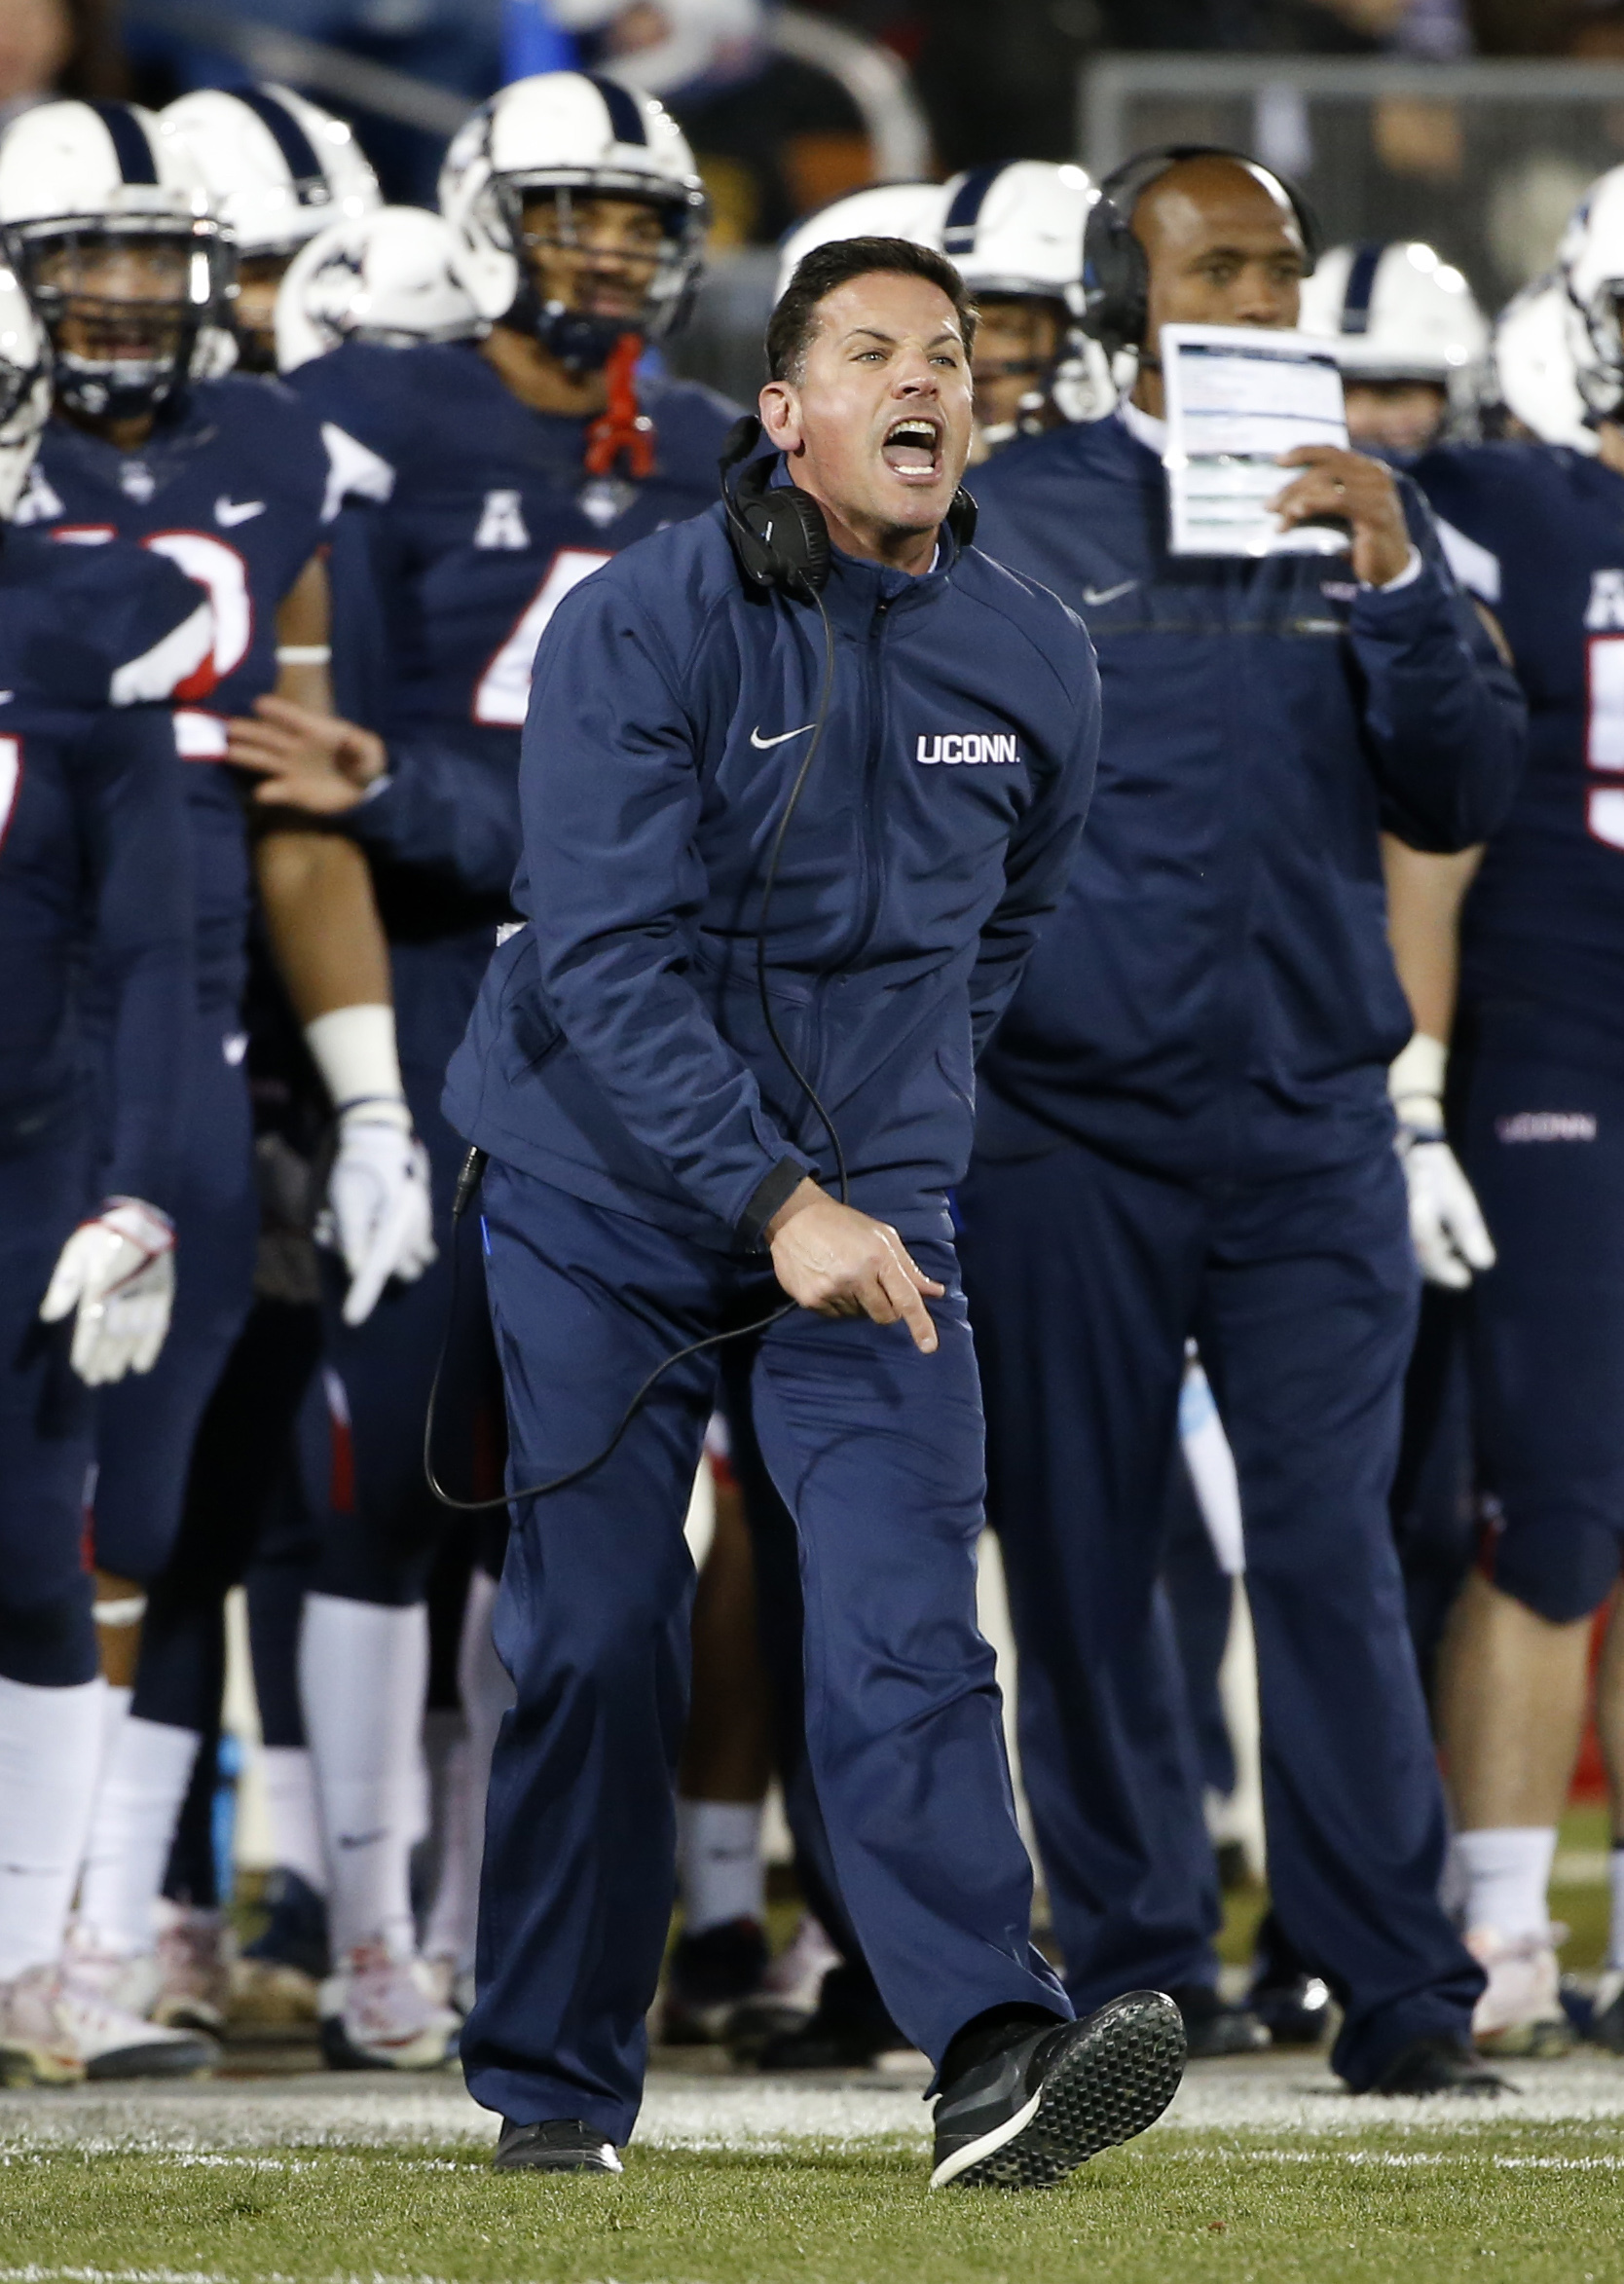 Connecticut head coach Bob Diaco yells to his team during the second half of an NCAA college football game against Tulane in East Hartford, Conn., Saturday, Nov. 26, 2016. (AP Photo/Mary Schwalm)